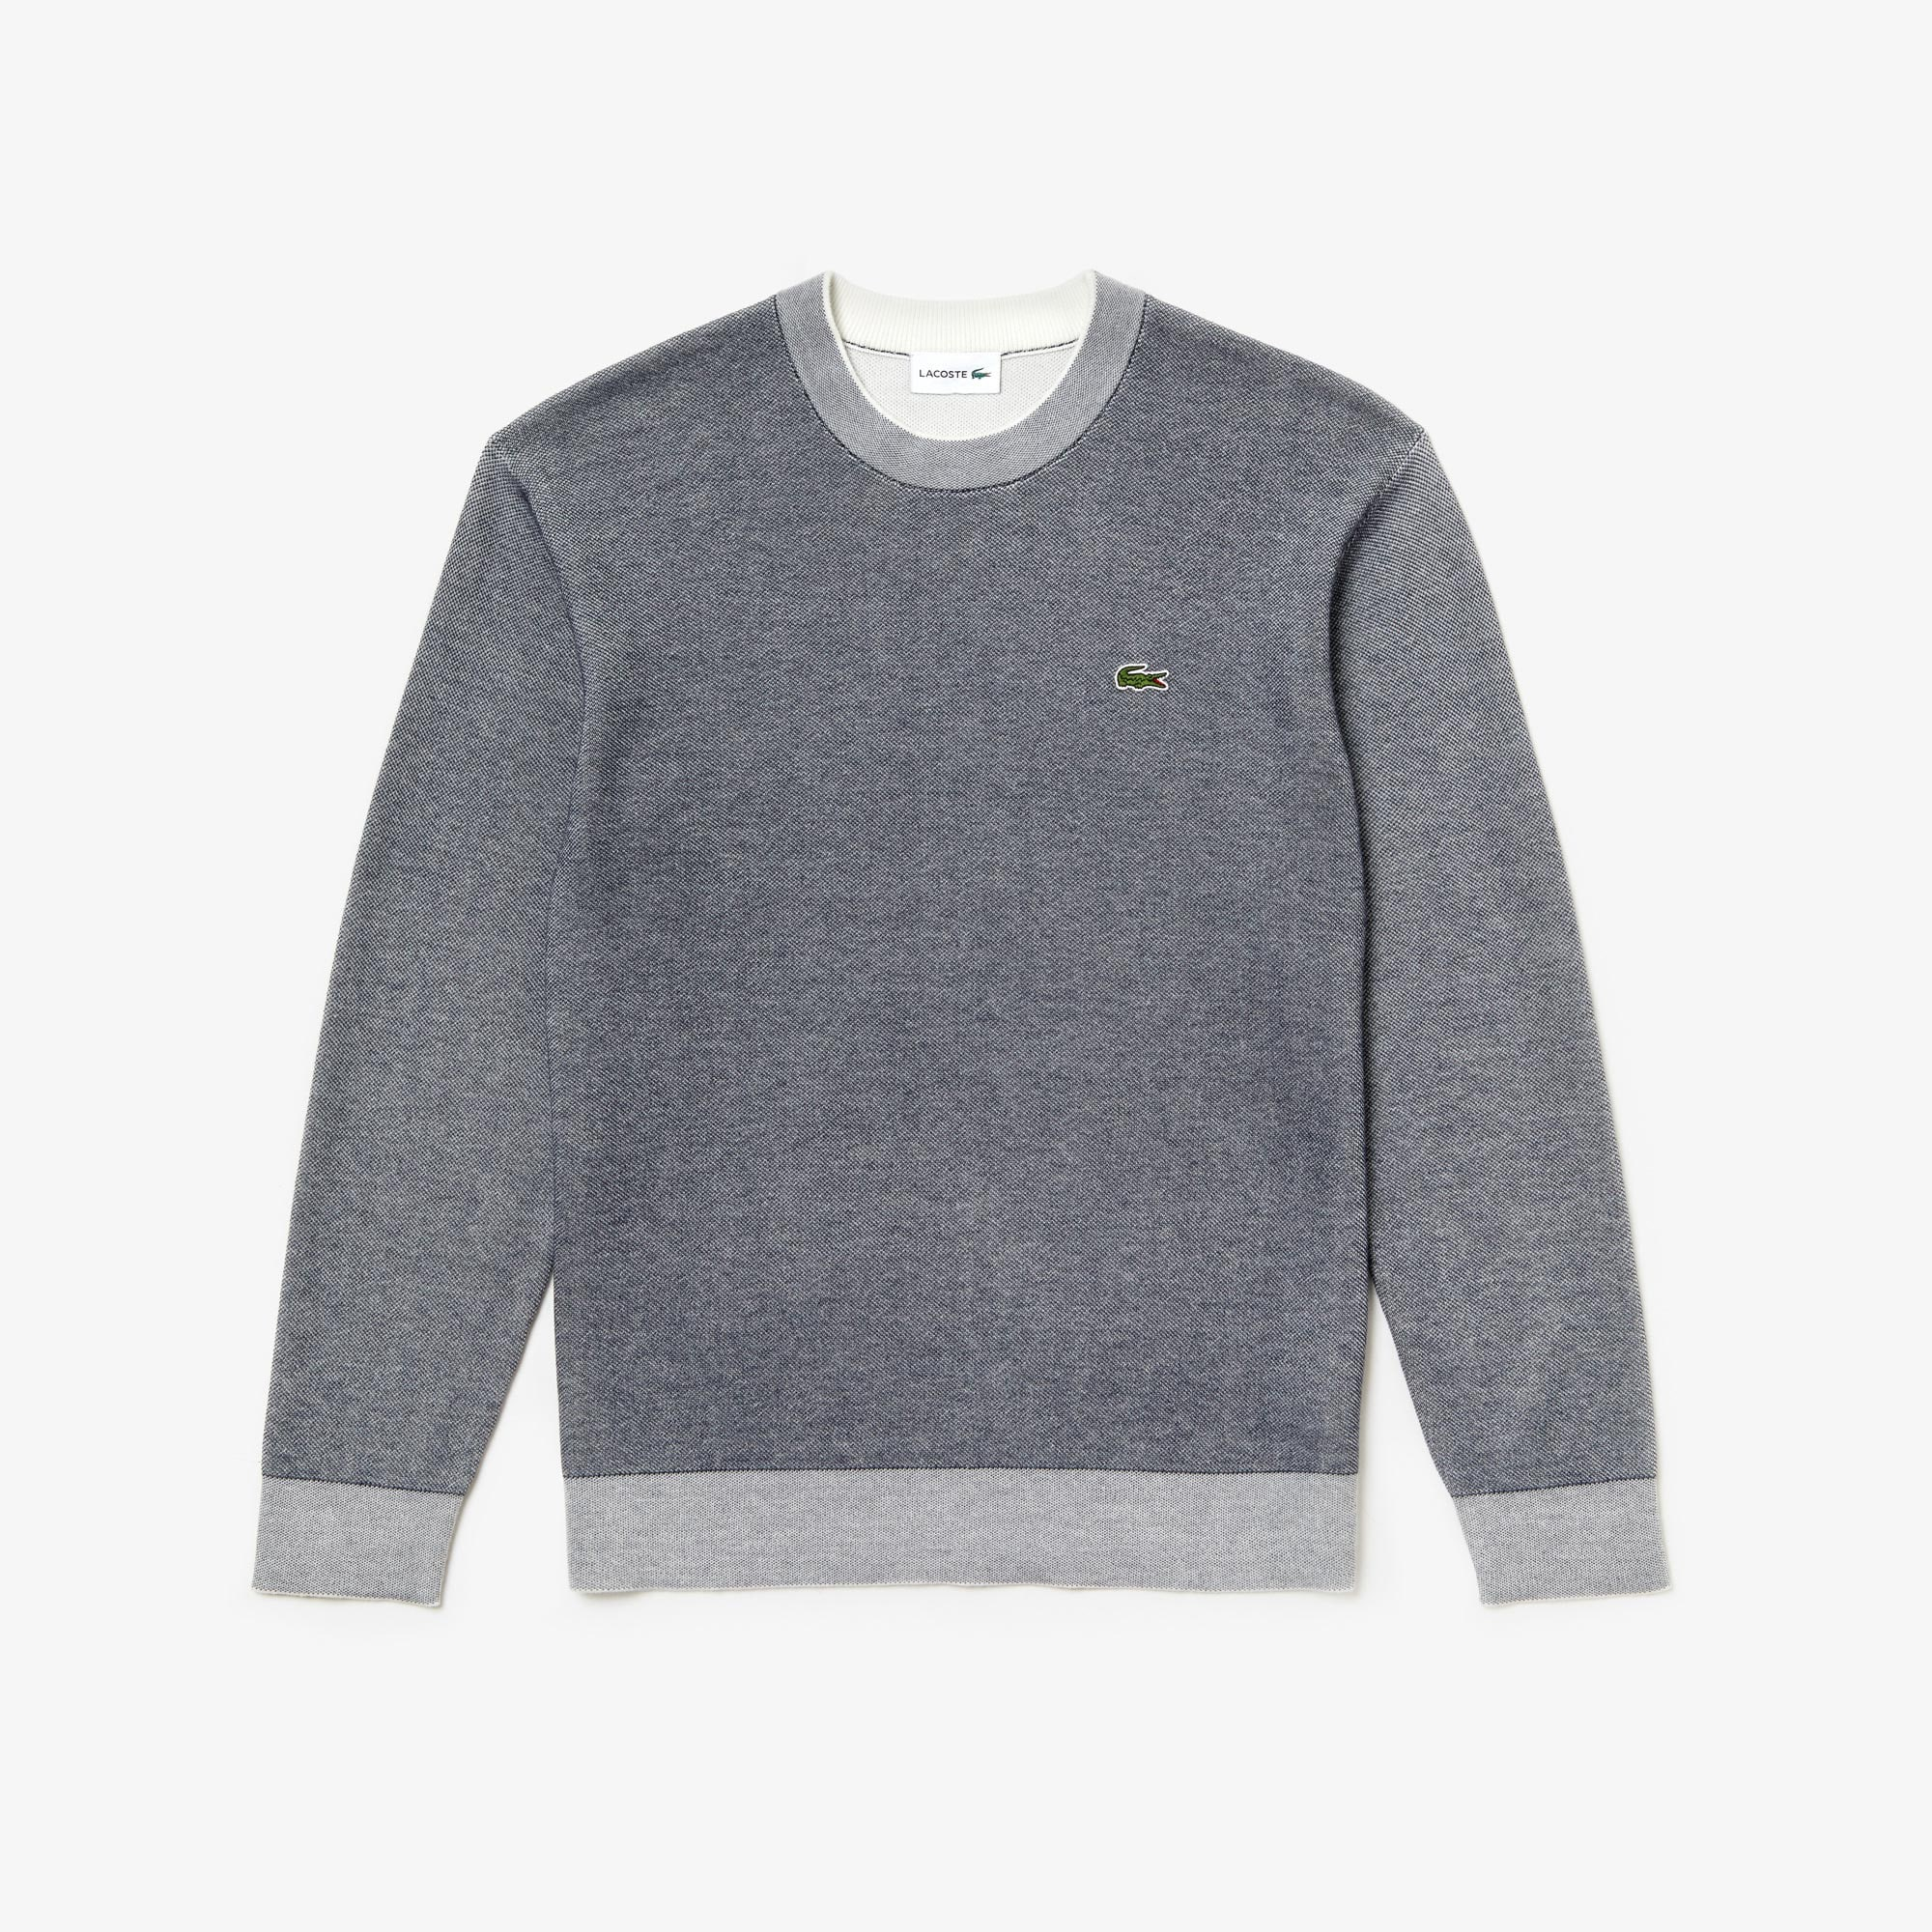 Pull Homme   Vêtements Homme   LACOSTE 9bf681ef0060